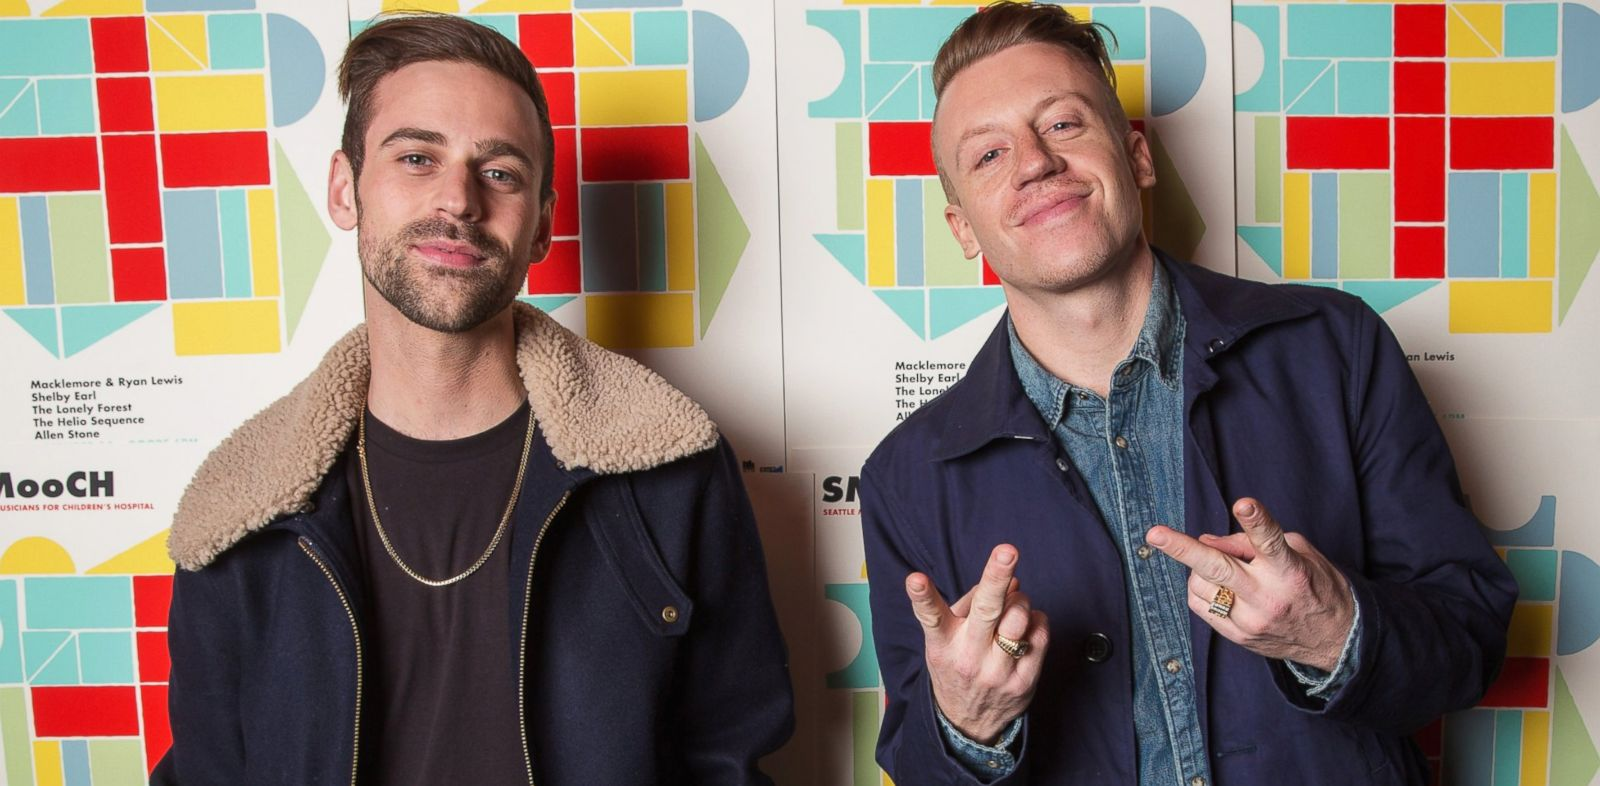 PHOTO: Ryan Lewis, left, and Macklemore pose backstage during the Seattle Musicians for Childrenâ??s Hospital benefit at The Showbox Market, Dec. 14, 2013, in Seattle.